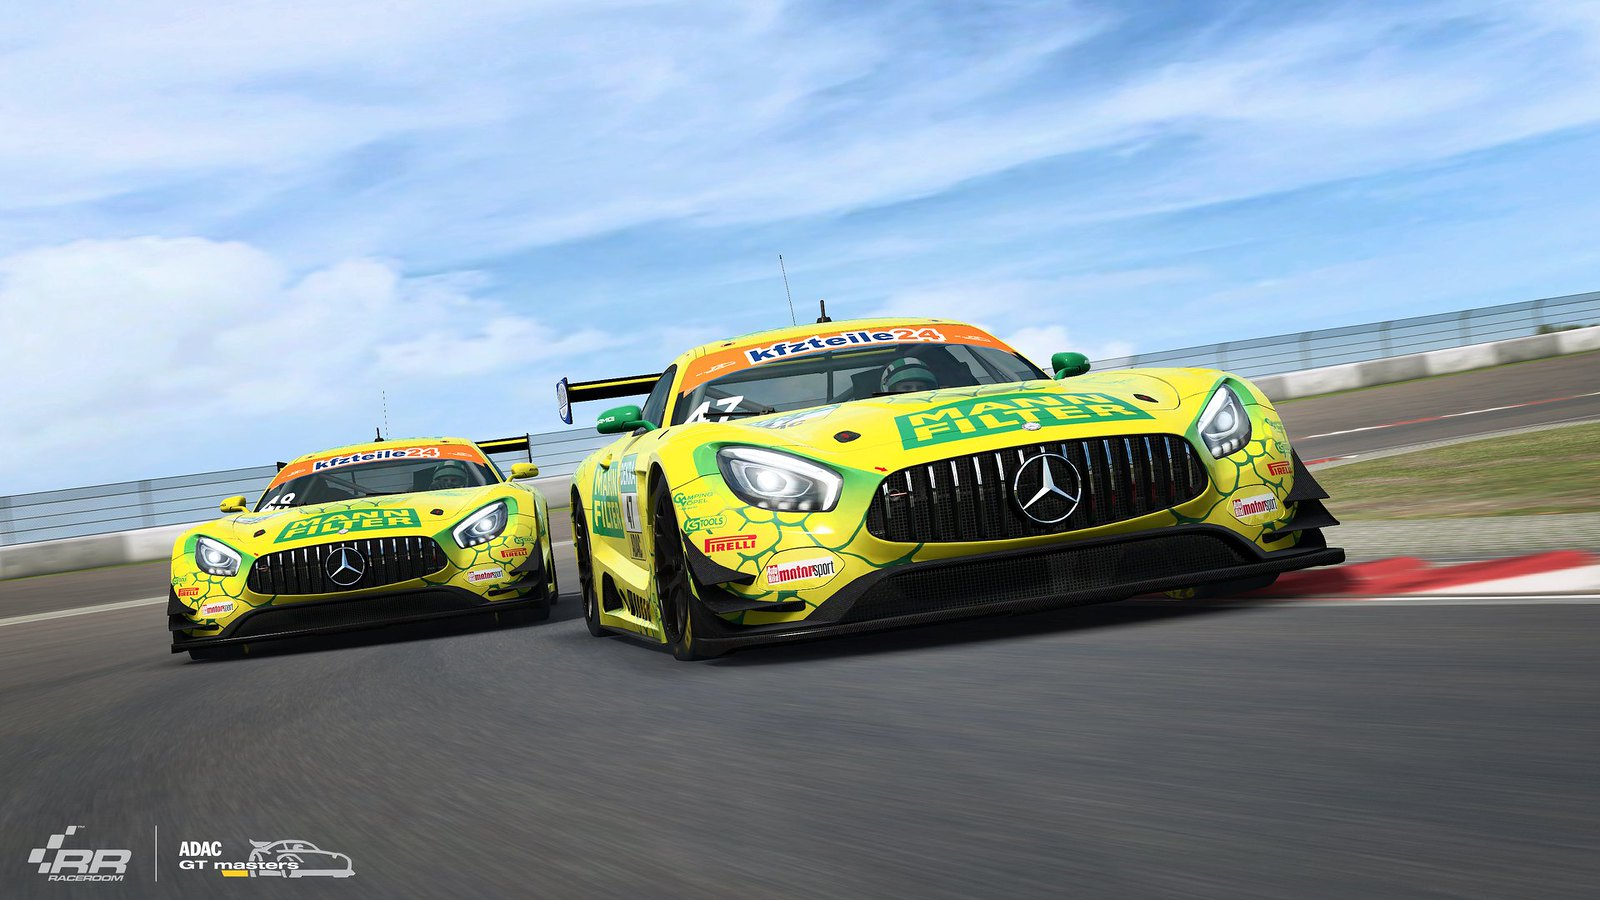 4 RaceRooom Mercedes-AMG teams of ADAC GT Masters 2018